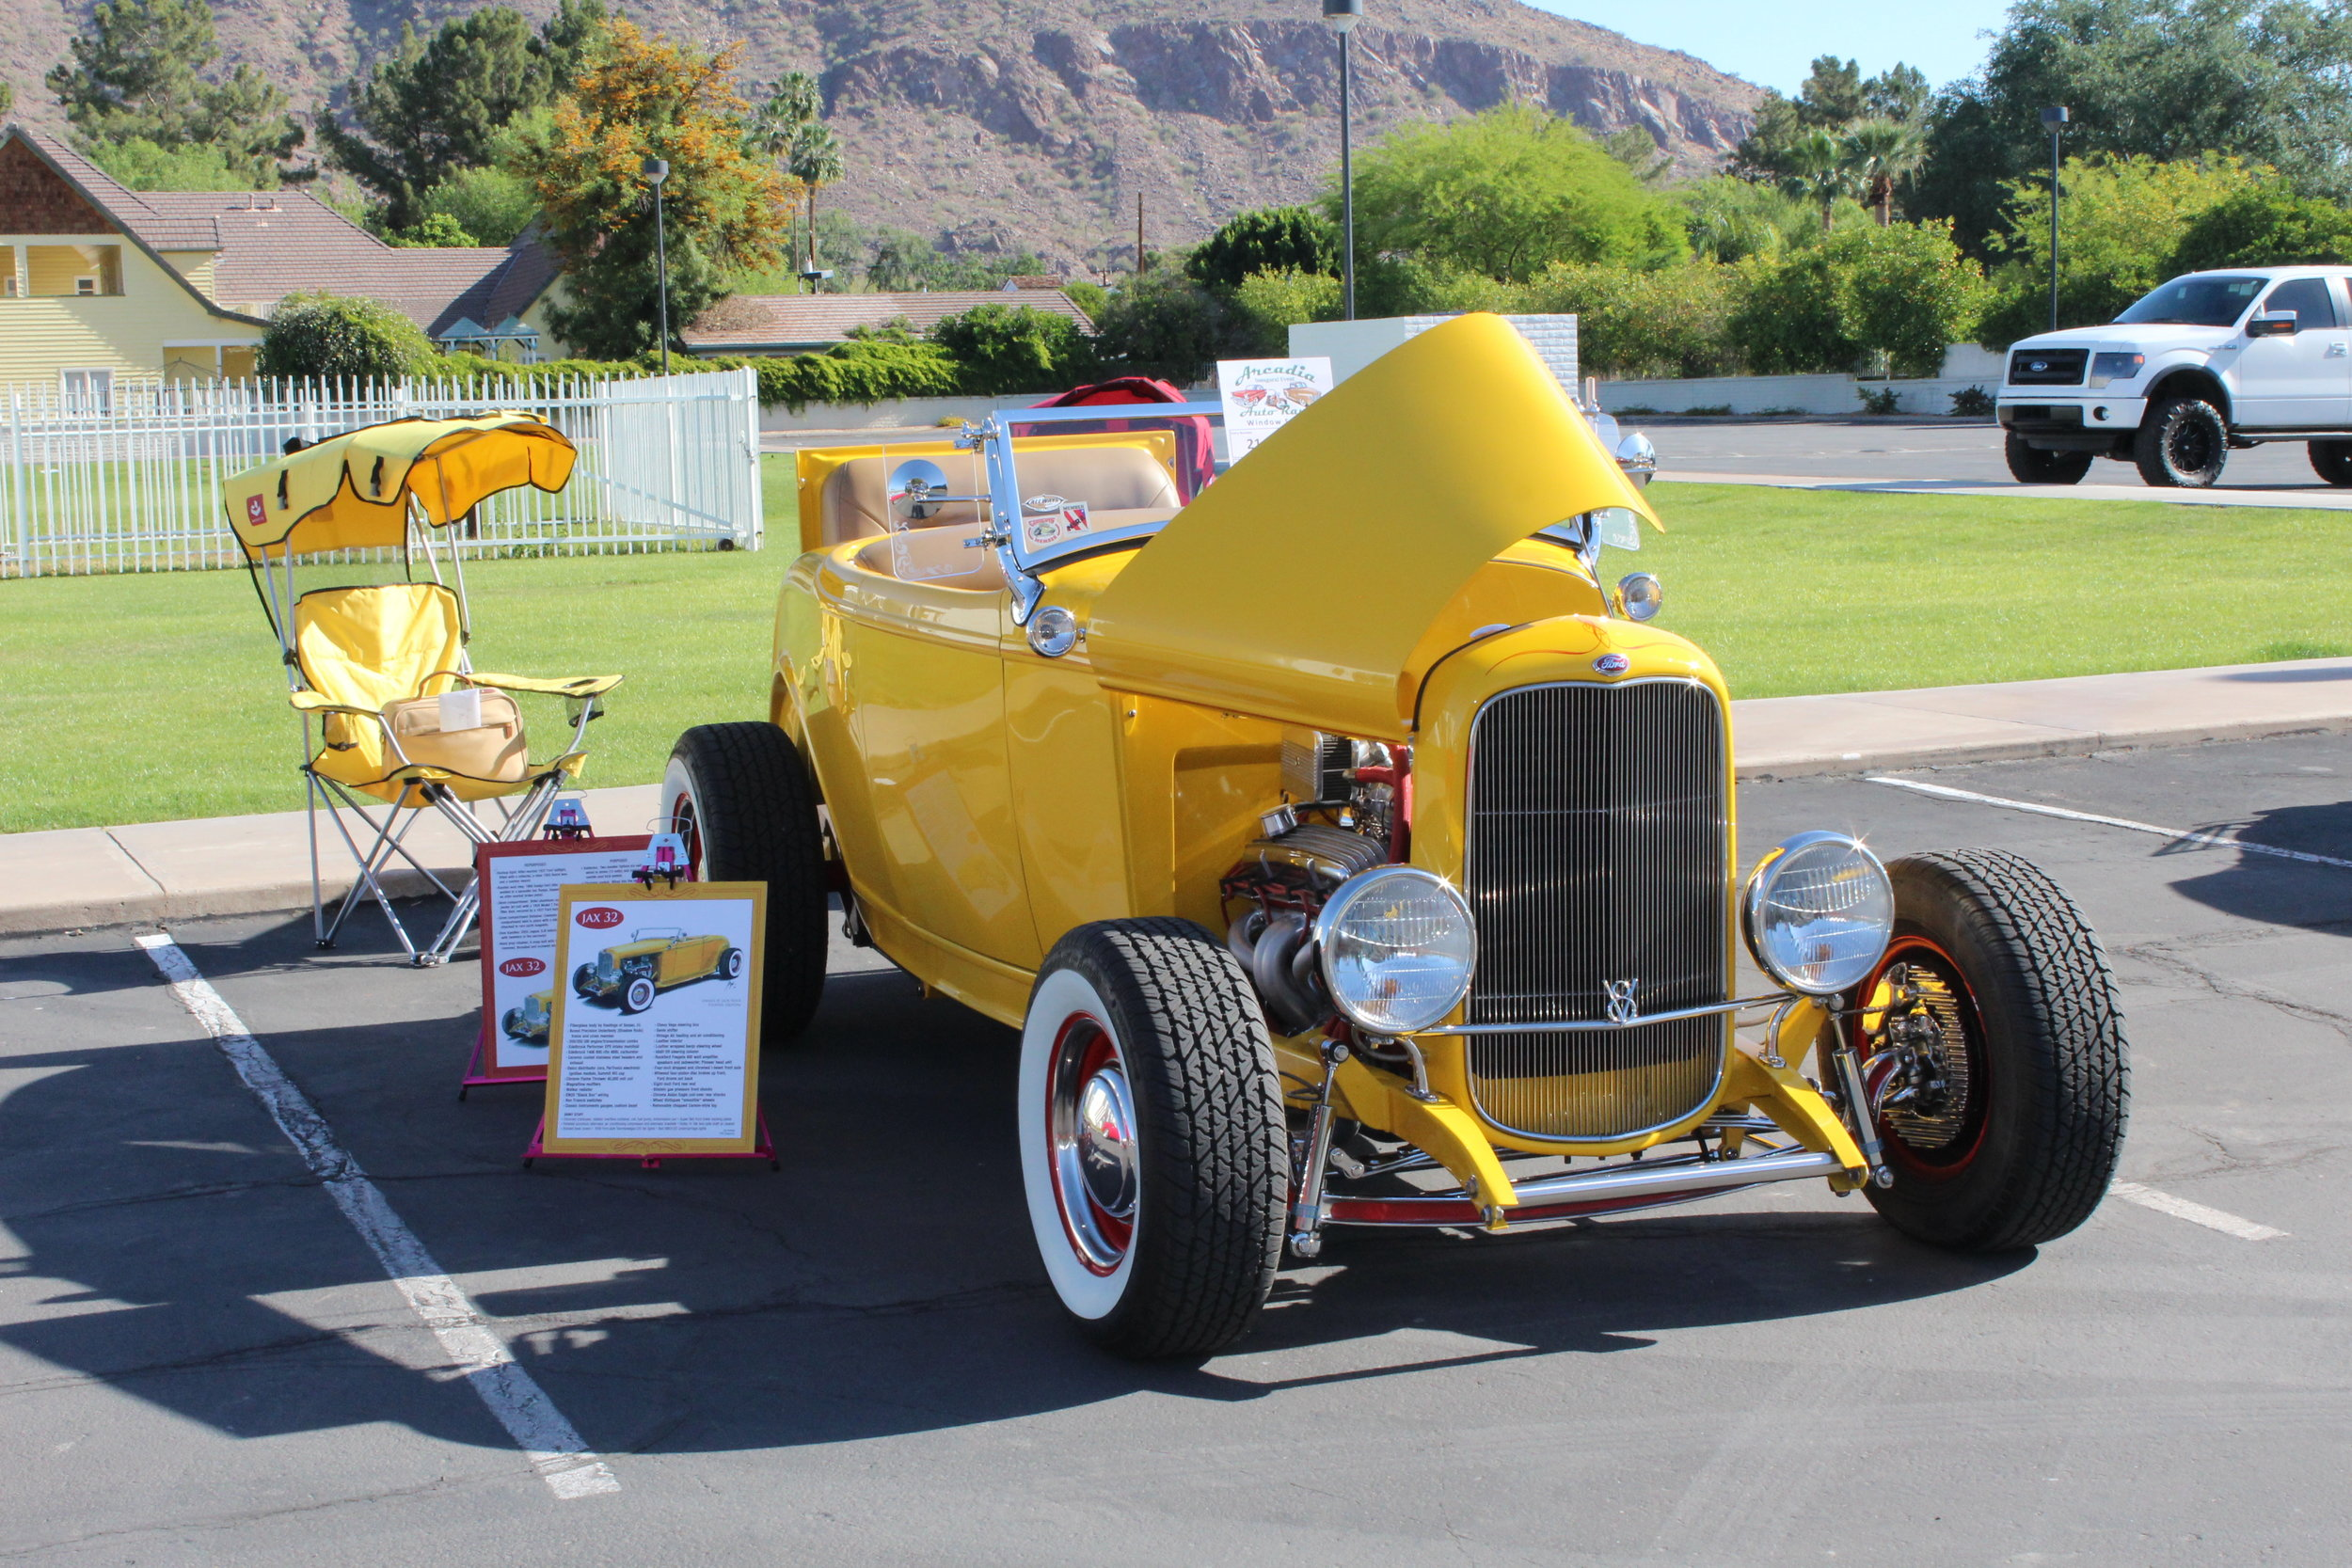 Best in Arcadia - a 1932 roadster hot-rod. Owned by Jack Nock